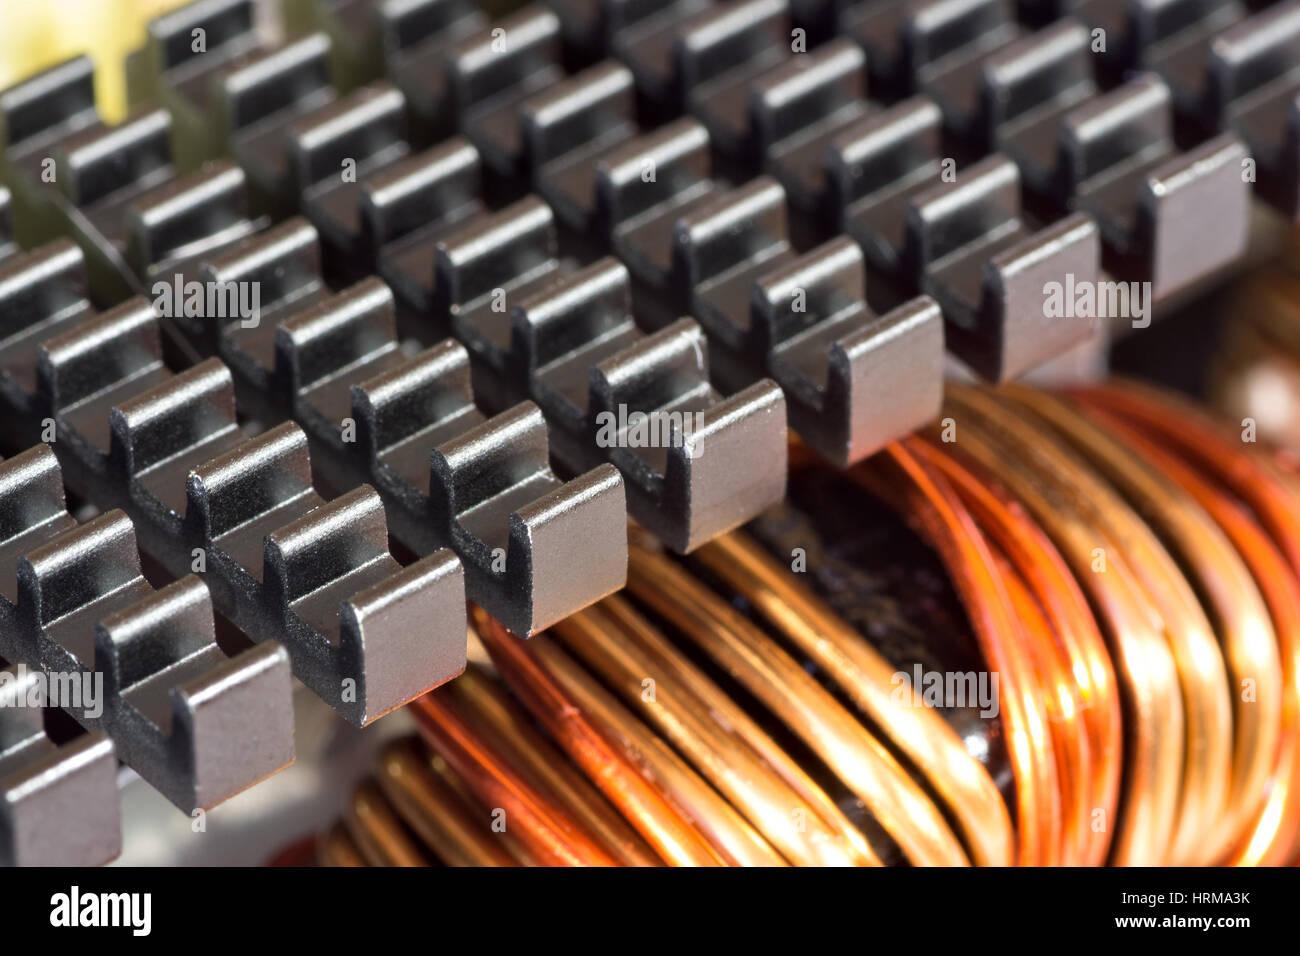 Radiator and inductance coil close-up - Stock Image